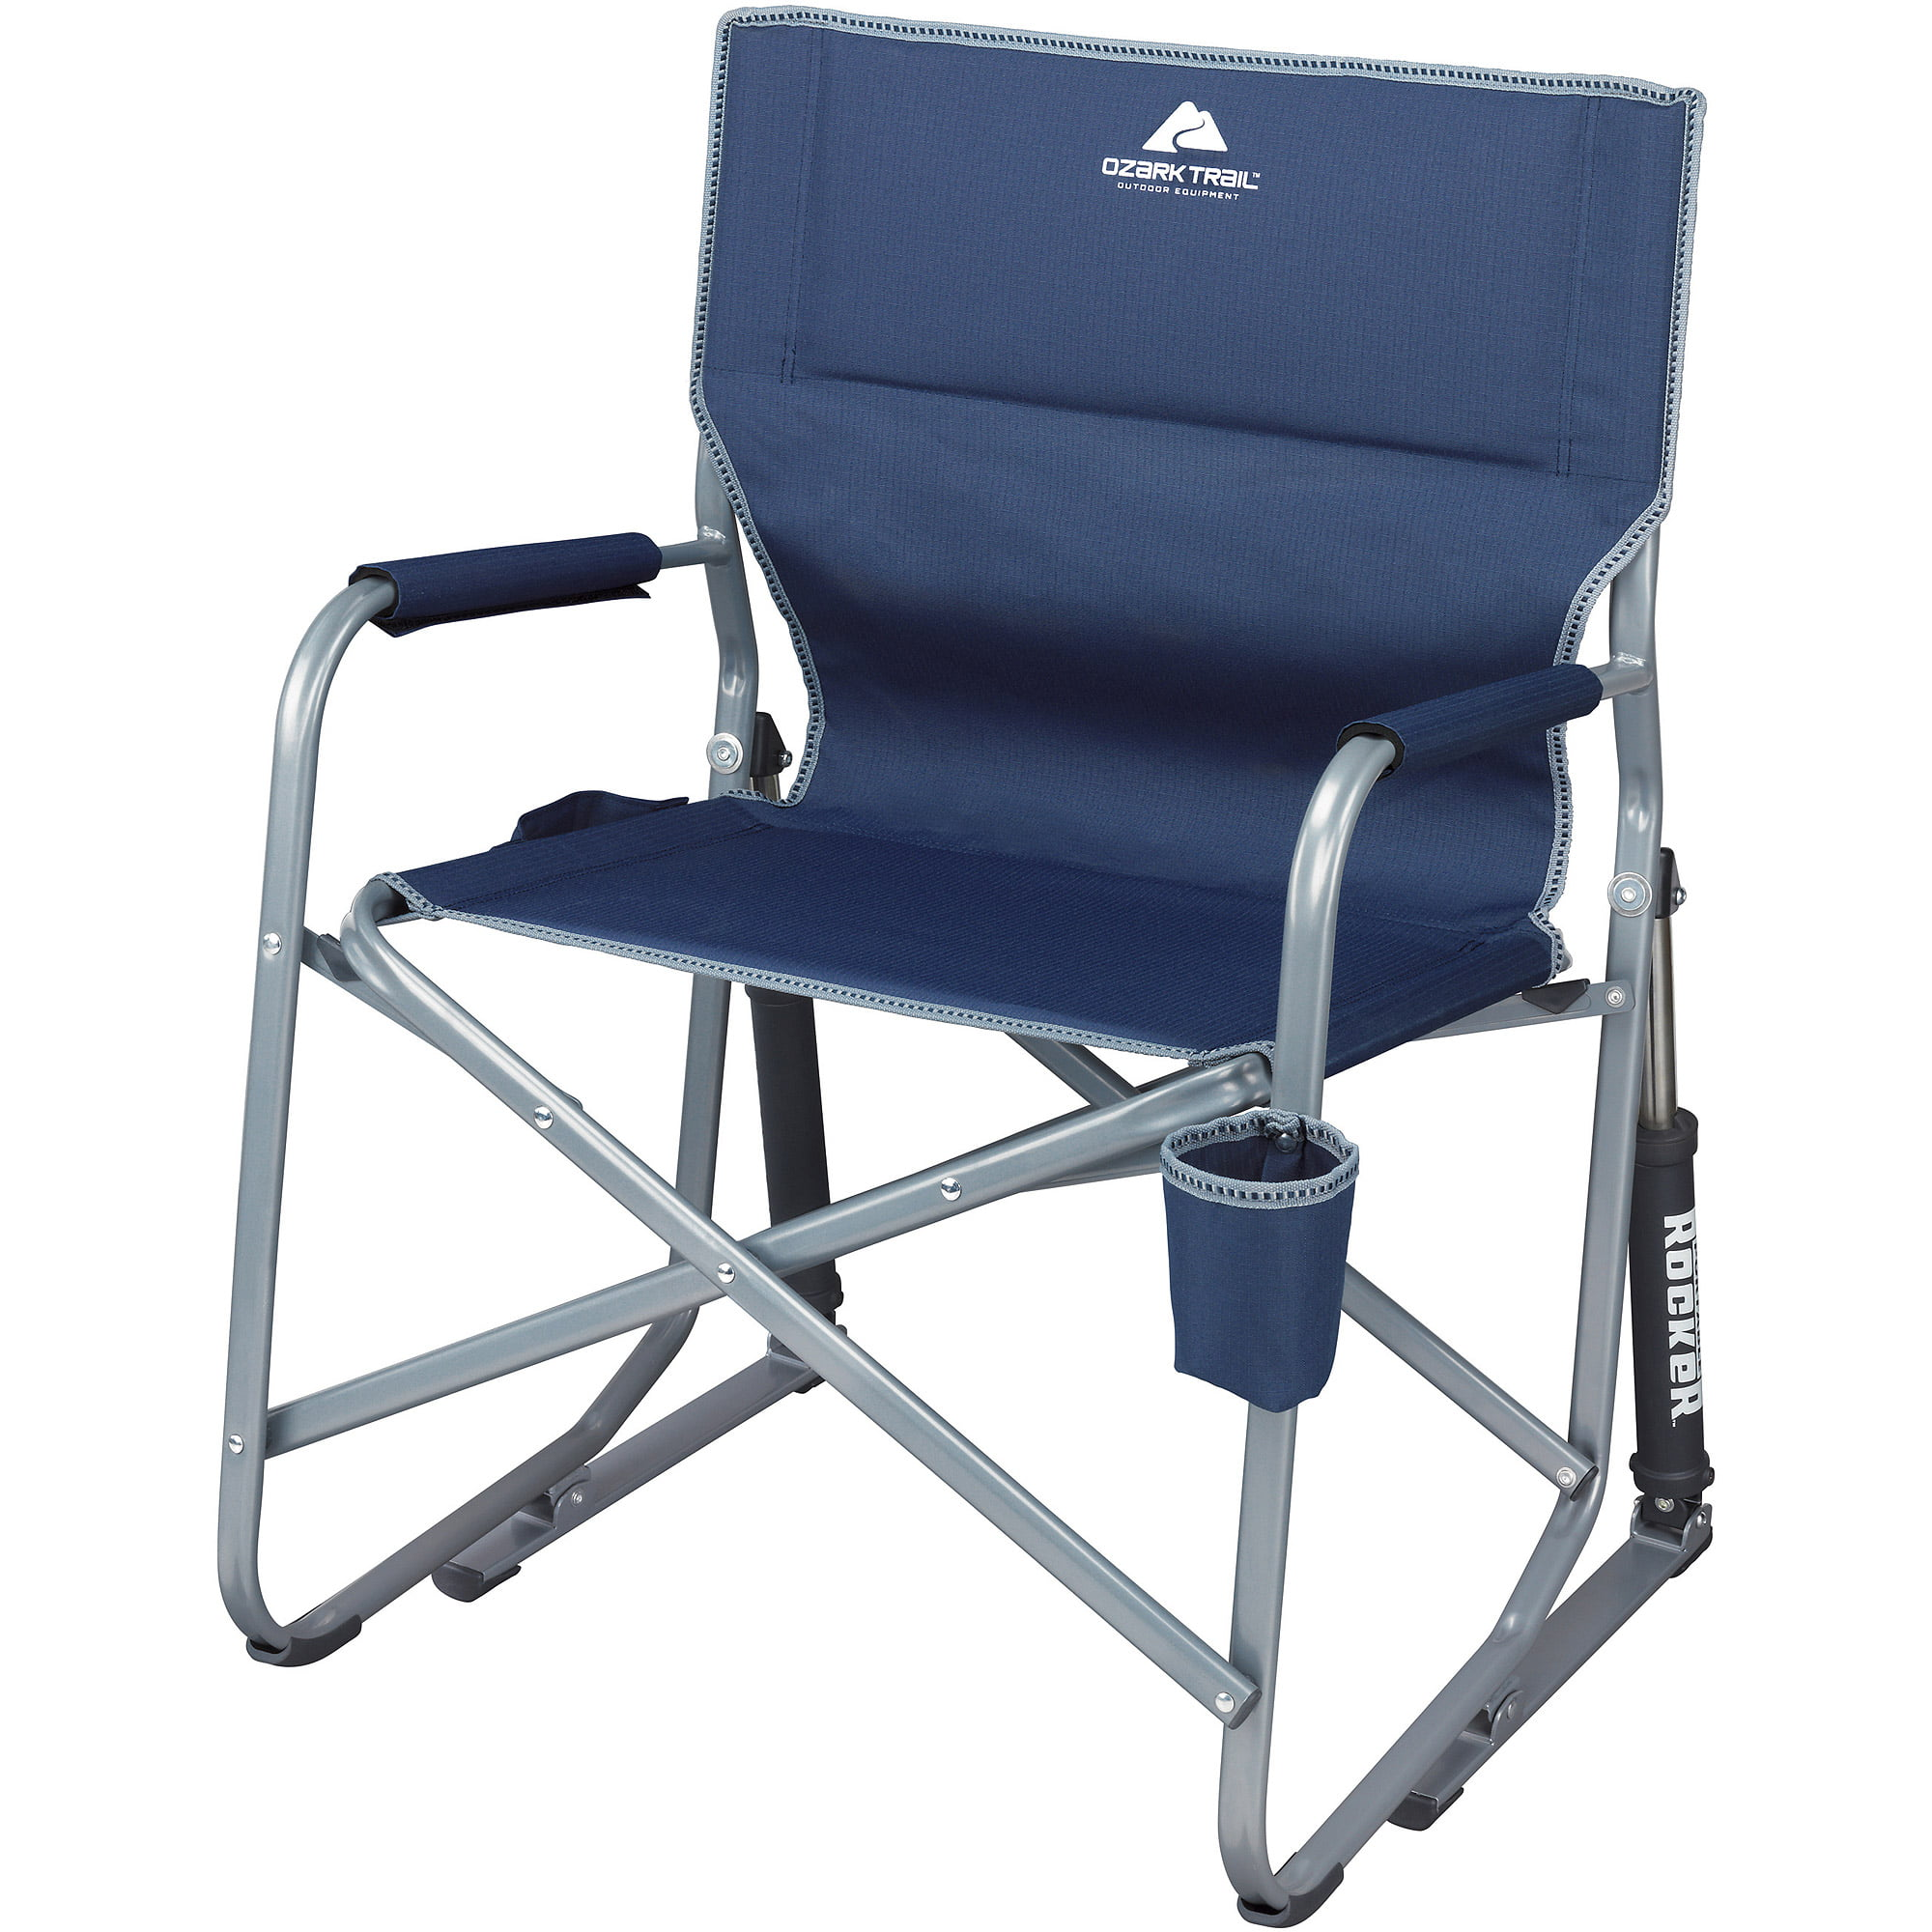 Ozark Trail Portable Rocking Chair Walmart